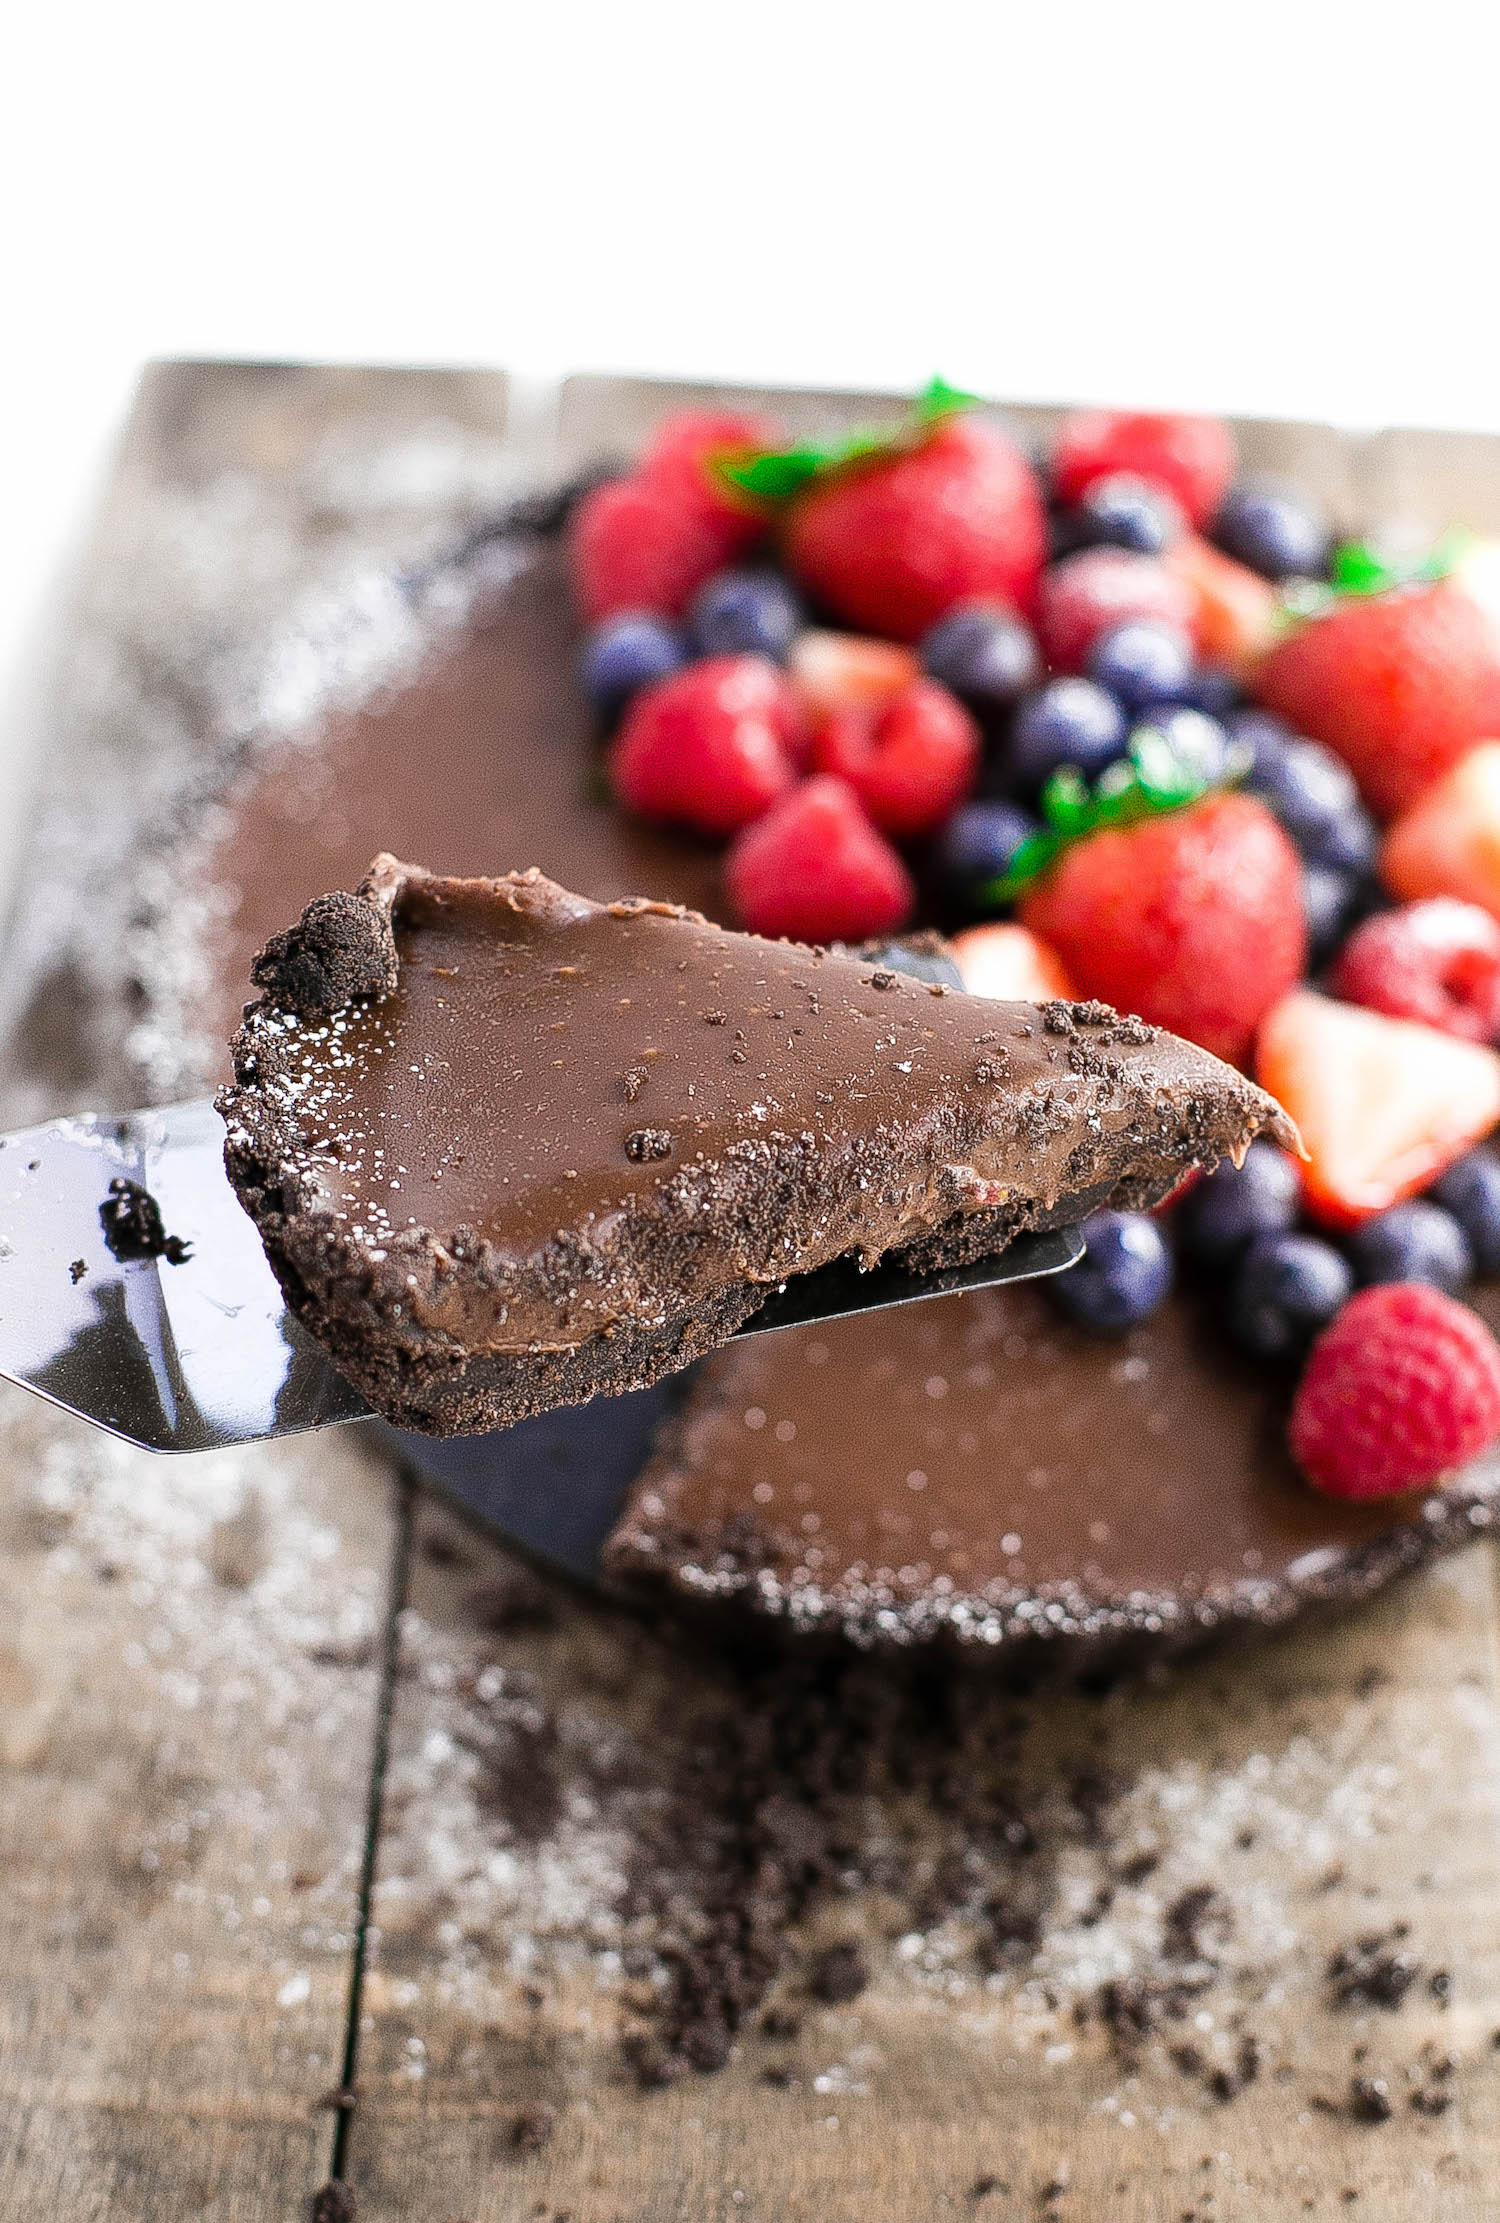 No-Bake Milk Chocolate Tart: this 7-ingredient tart contains a simple Oreo cookie crust and a rich, creamy milk chocolate ganache filling. Ultimate summer indulgence! | TrufflesandTrends.com